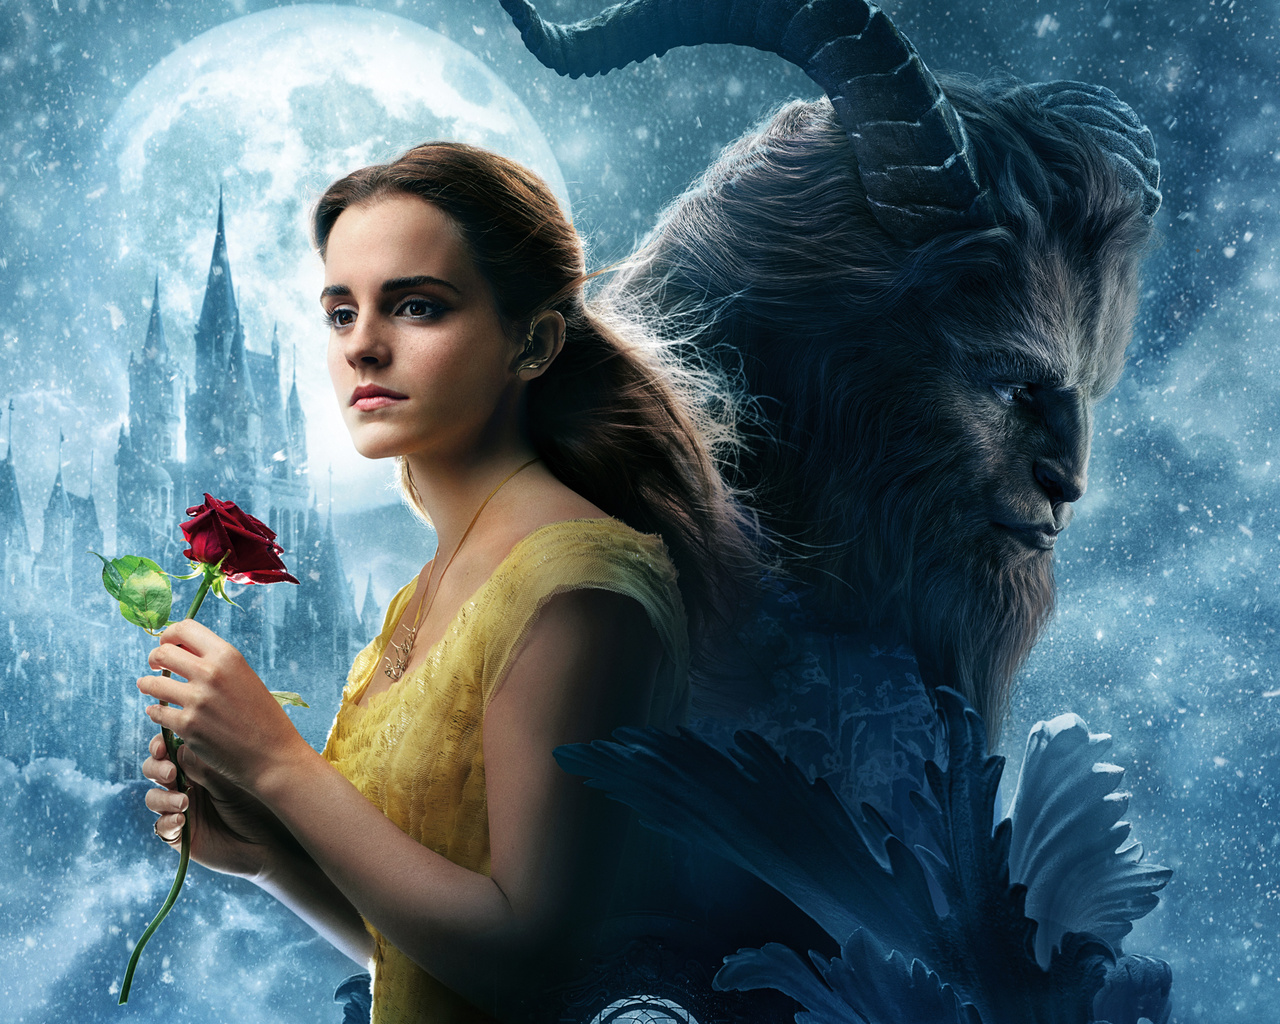 Download Beauty And Beast: 1280x1024 Beauty And The Beast Movie 1280x1024 Resolution